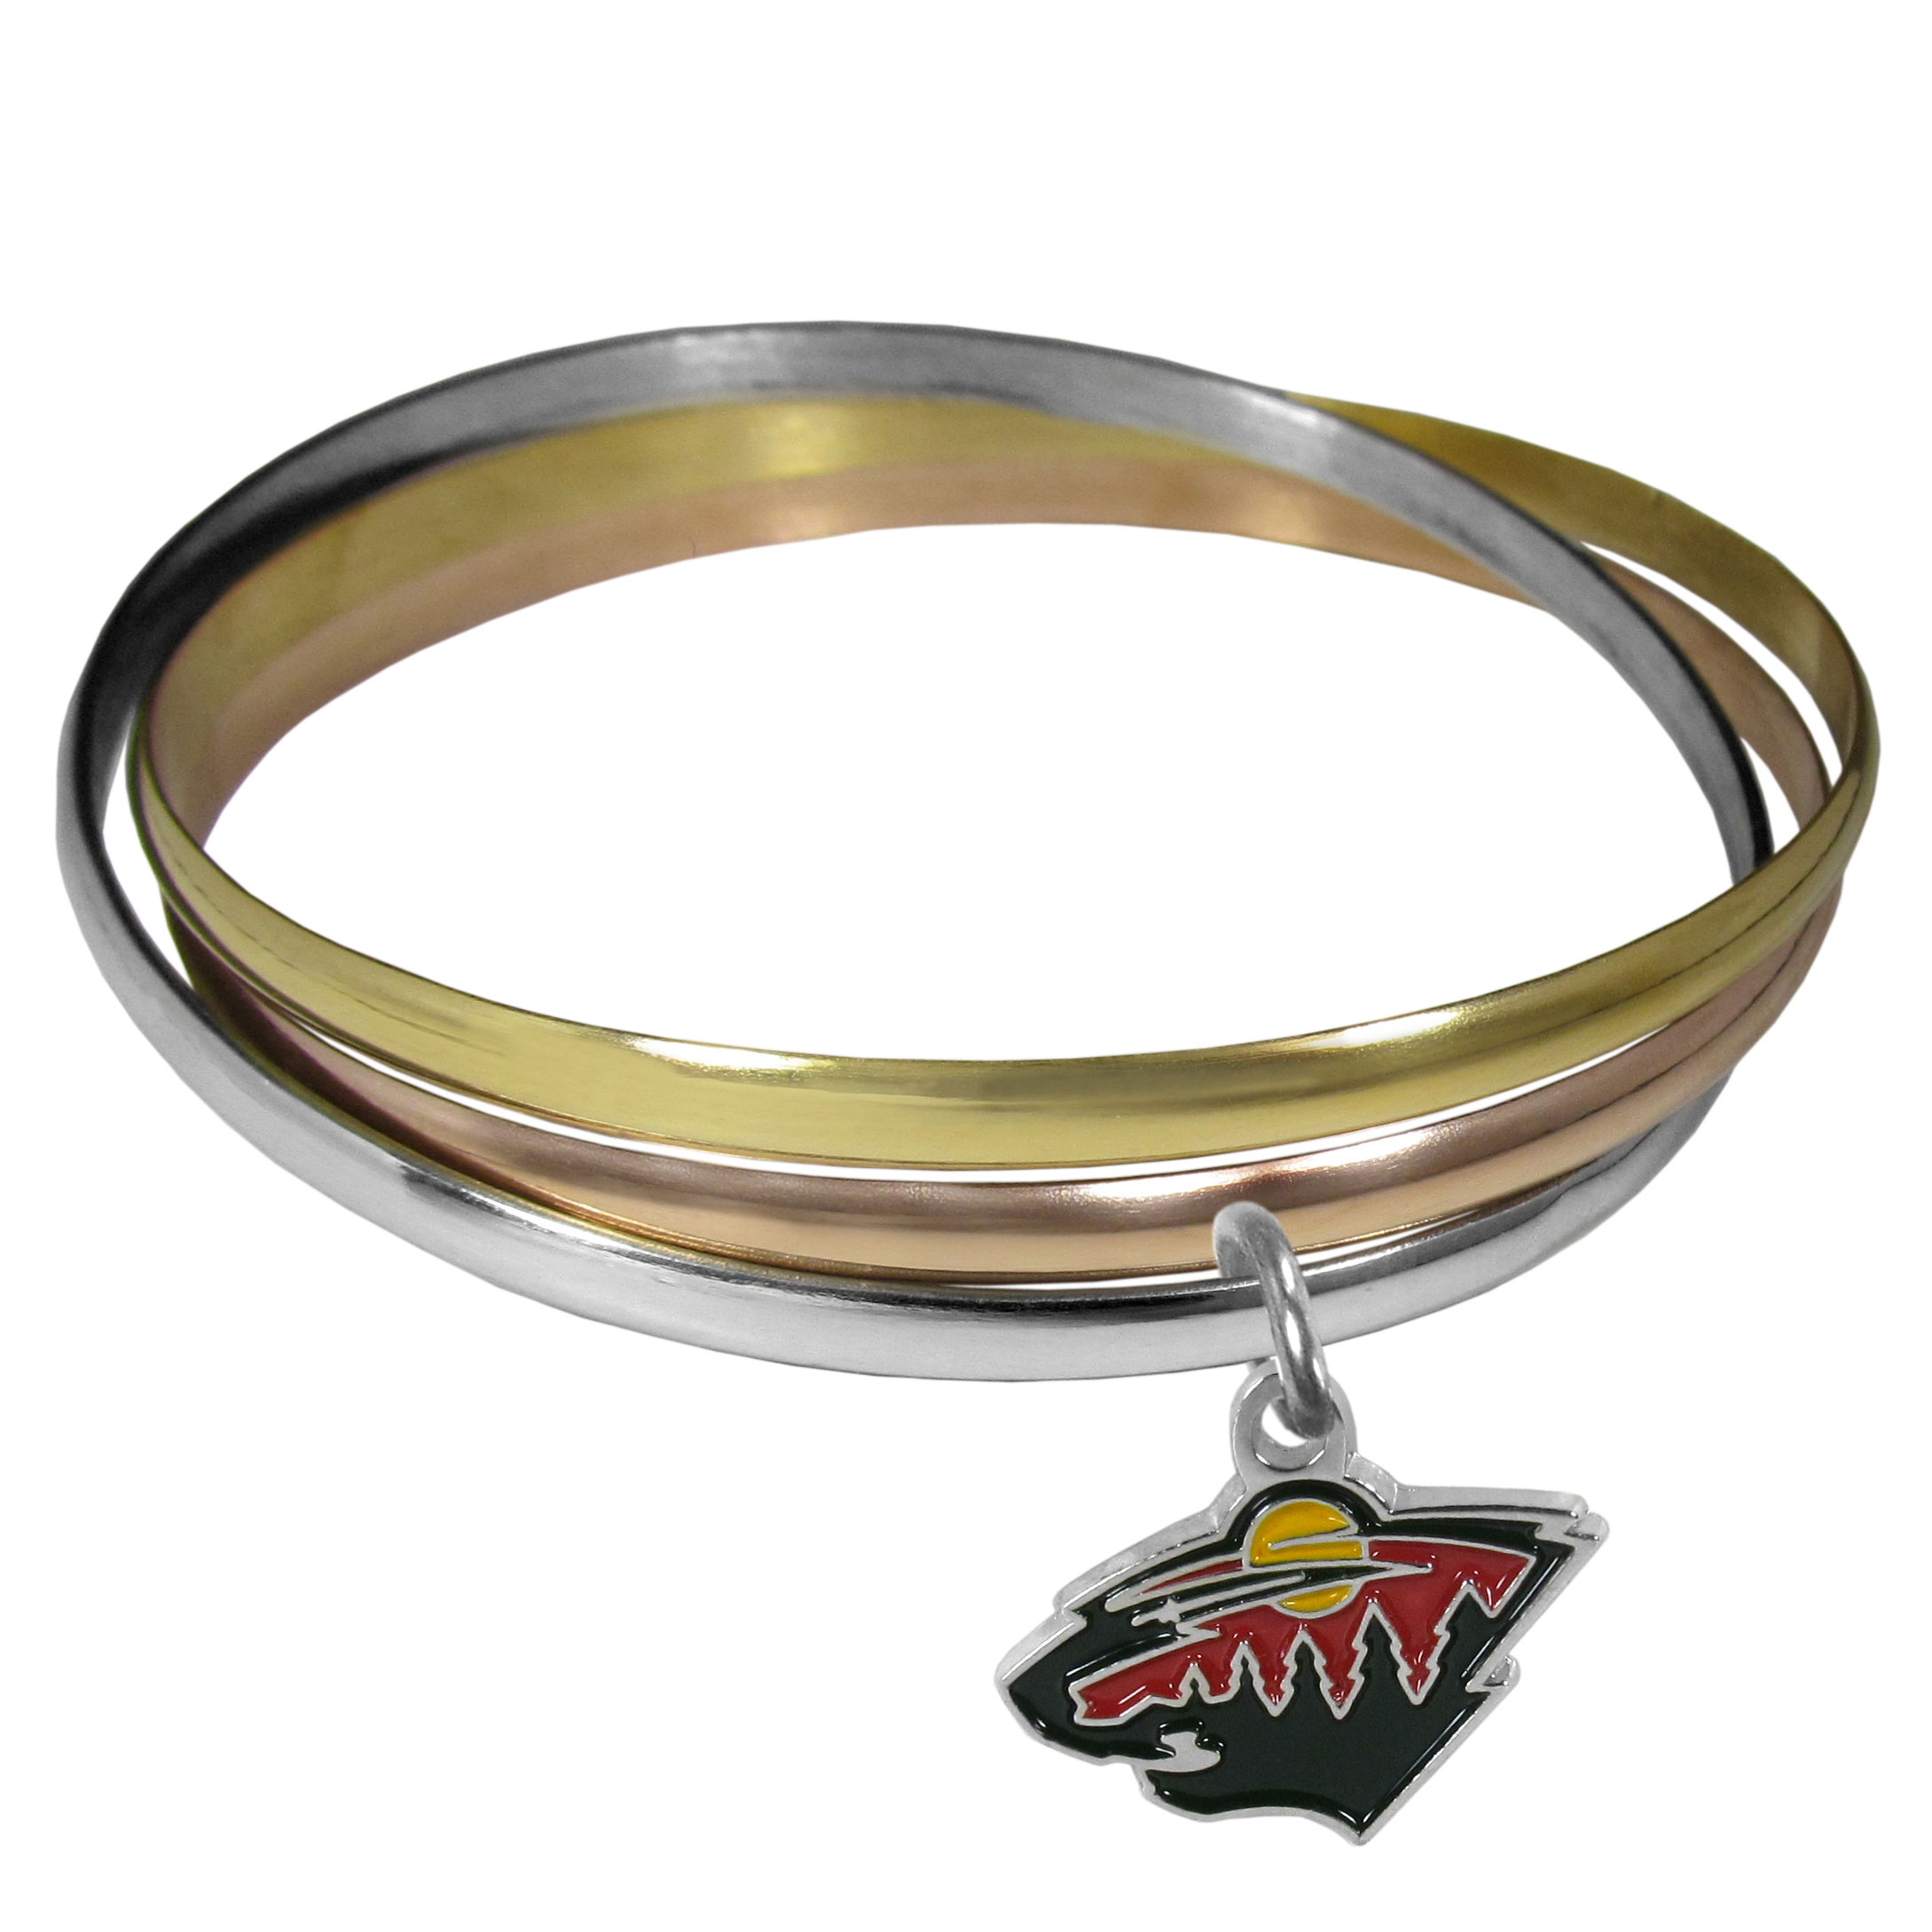 Minnesota Wild® Tri-color Bangle Bracelet - These beautiful bangles come in a interlocking style and feature a fully cast Minnesota Wild® charm with enameled team colors. The bracelet has a silver toned bangle, gold tone bangle and brass toned bangle.